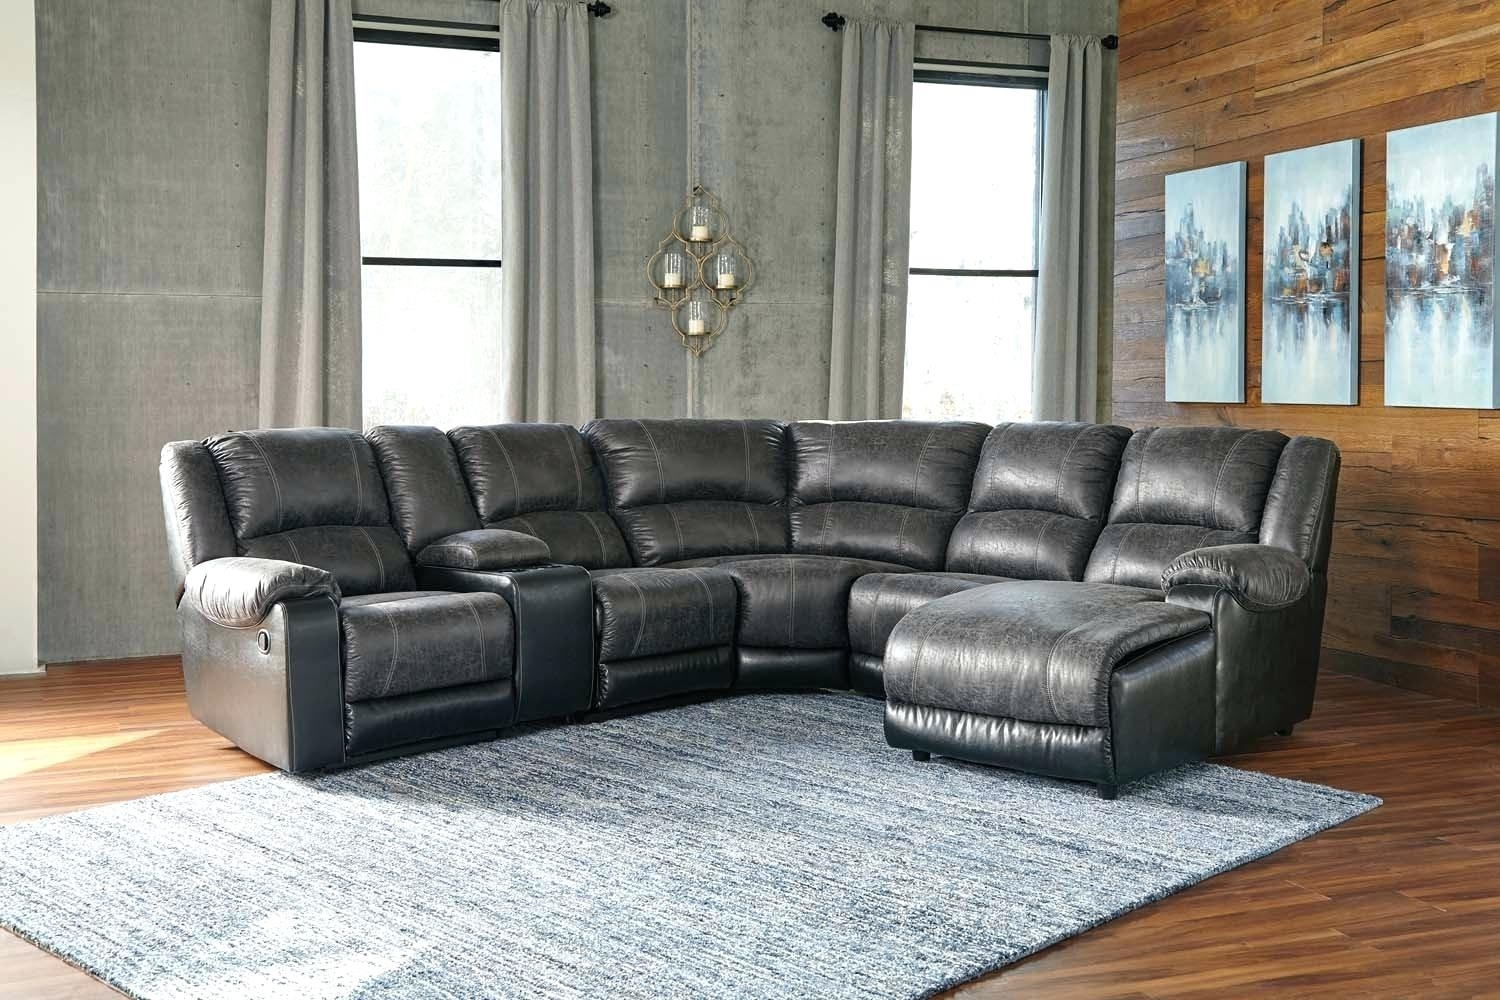 Beckett Leather 6 Piece Chaise Sectional Sofa With 2 Power Recliners With Regard To Calder Grey 6 Piece Manual Reclining Sectionals (Image 5 of 25)